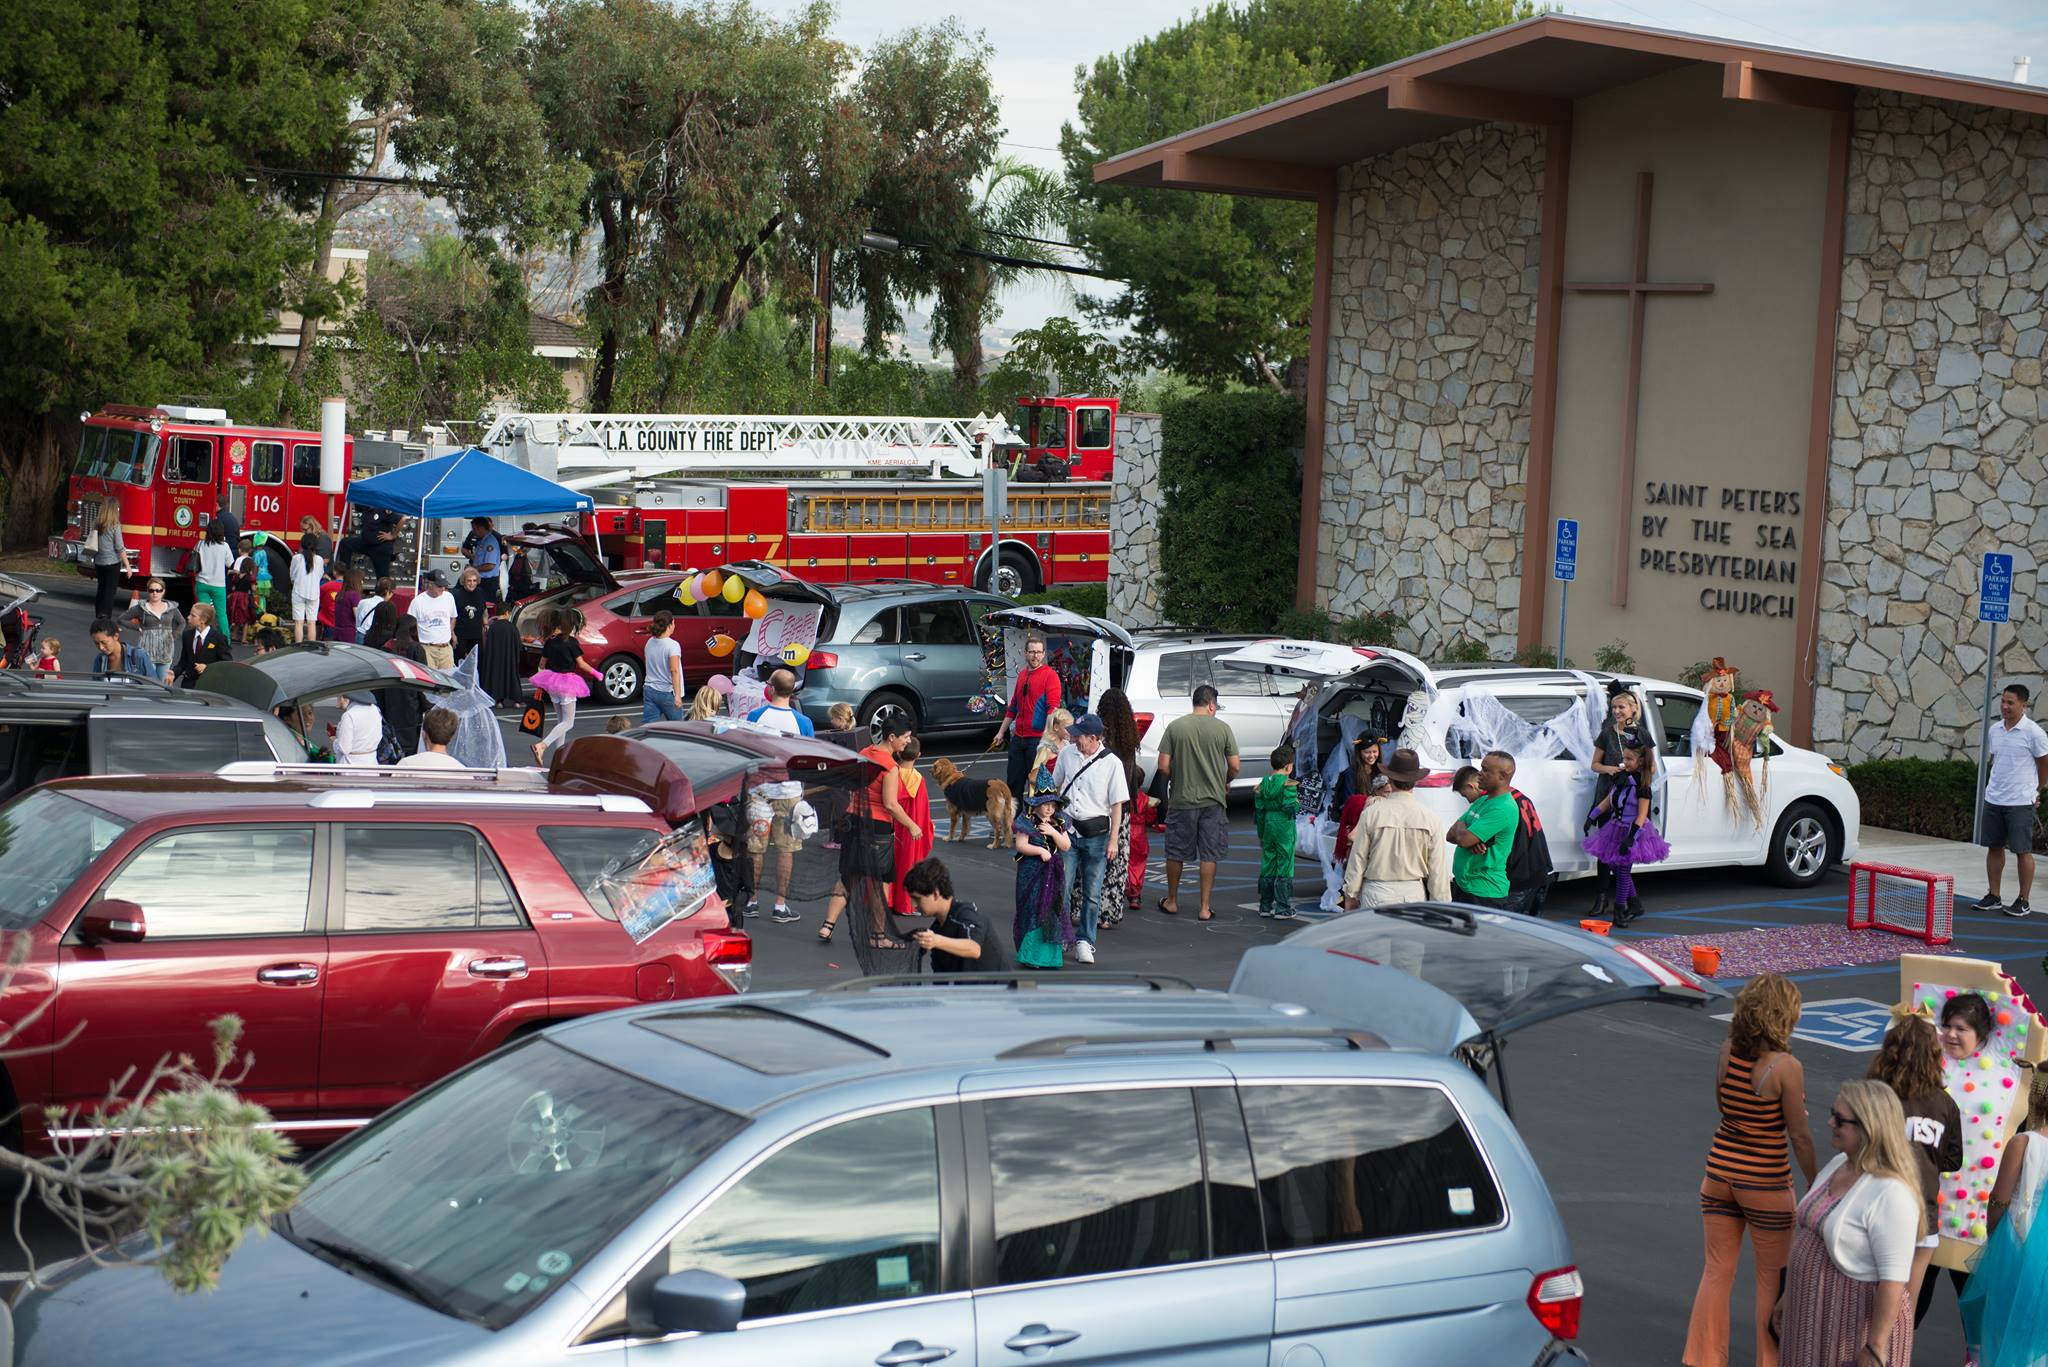 trunk or treat lot with fire truck.jpg